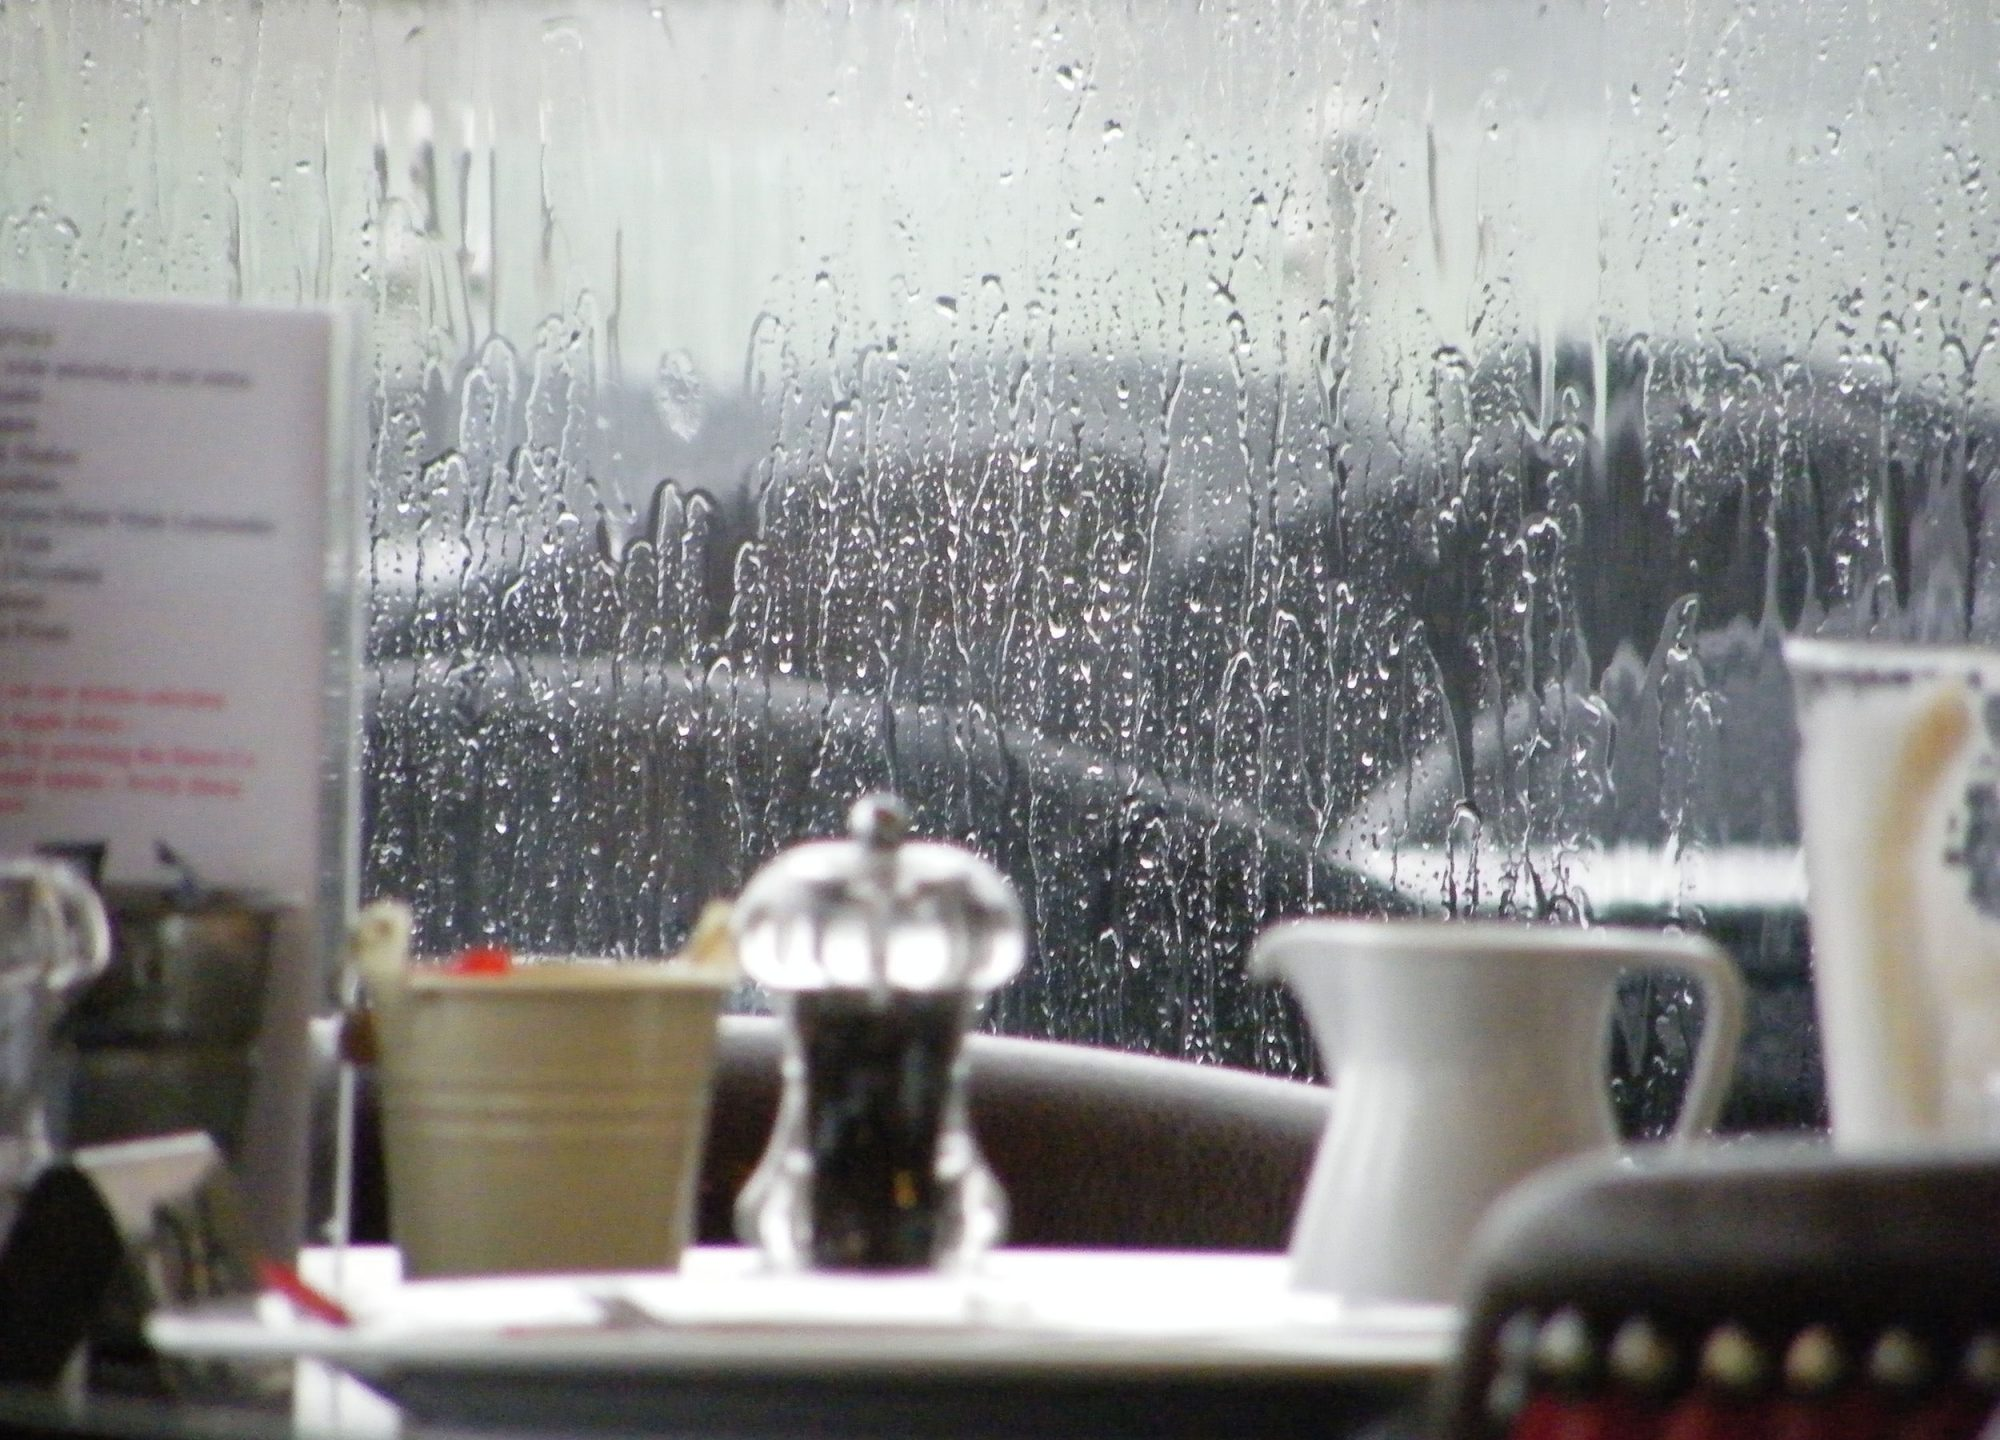 Bad Weather Leads to Bad Restaurant Reviews, According to New Research